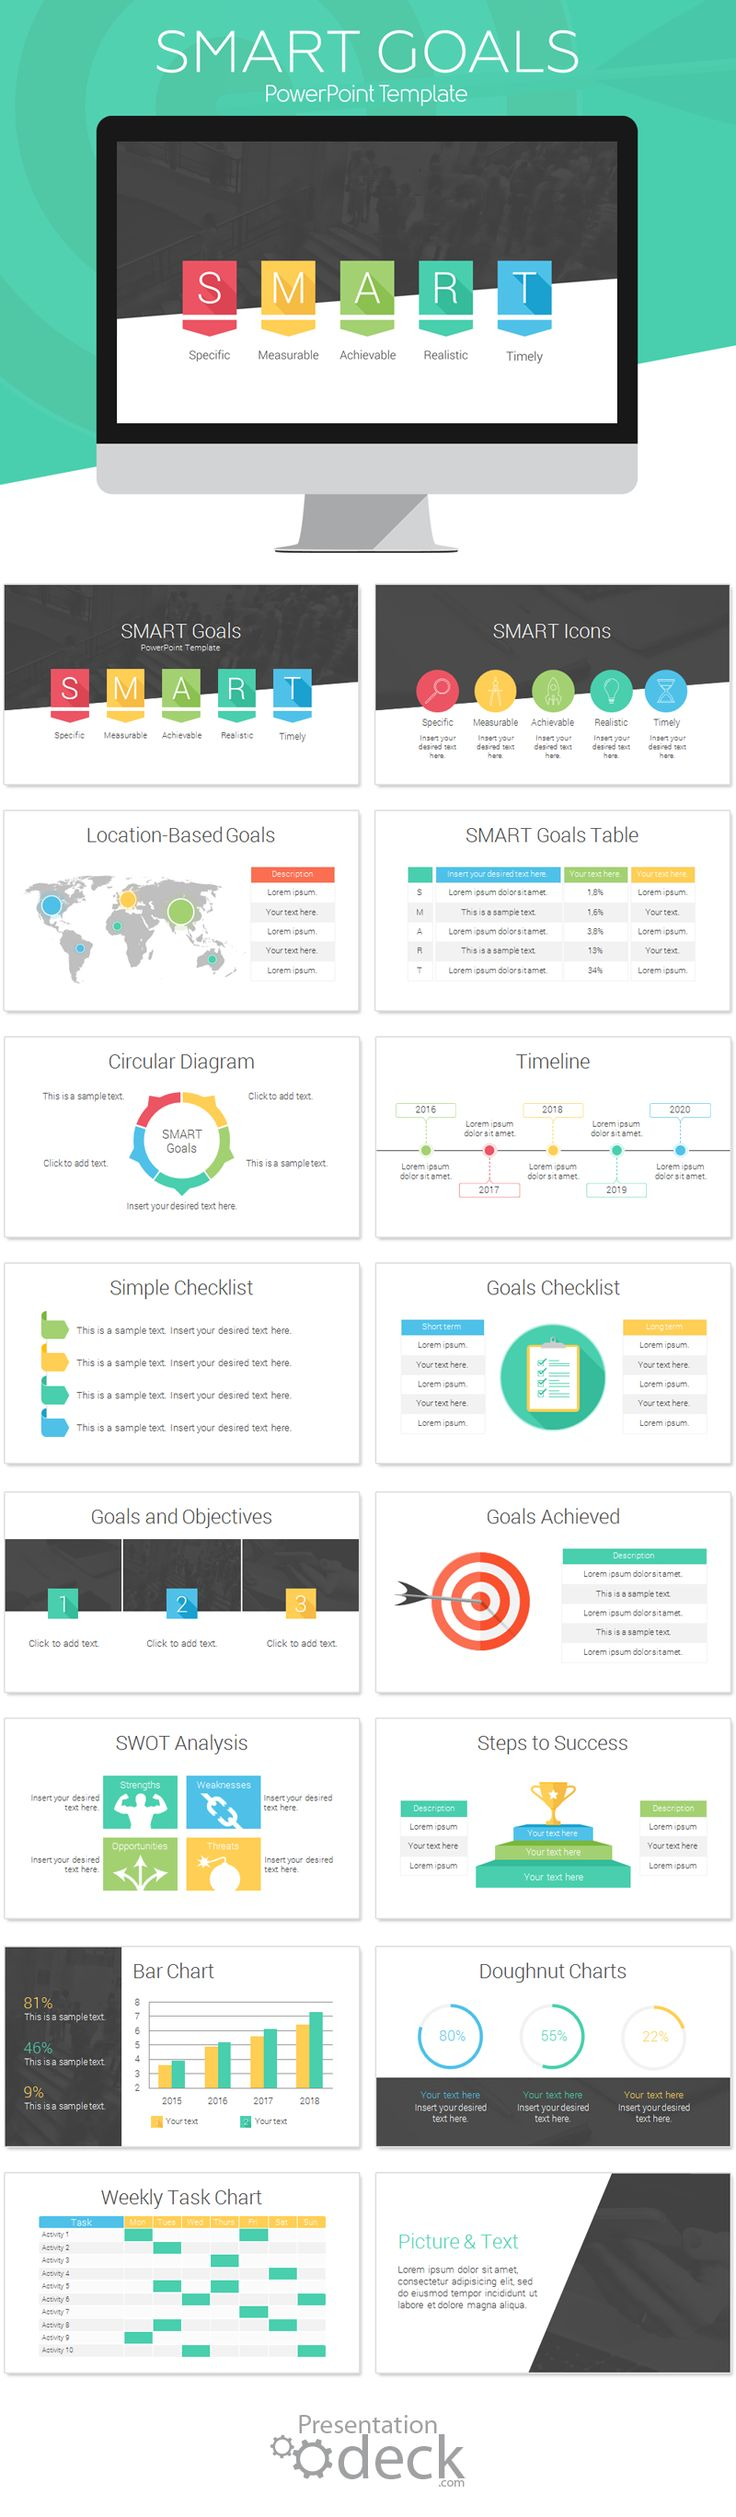 SMART Goals PowerPoint template with 16 pre-designed slides. Define your business target and objectives with style using this modern infographic for PowerPoint. #powerpoint #presentations #marketing